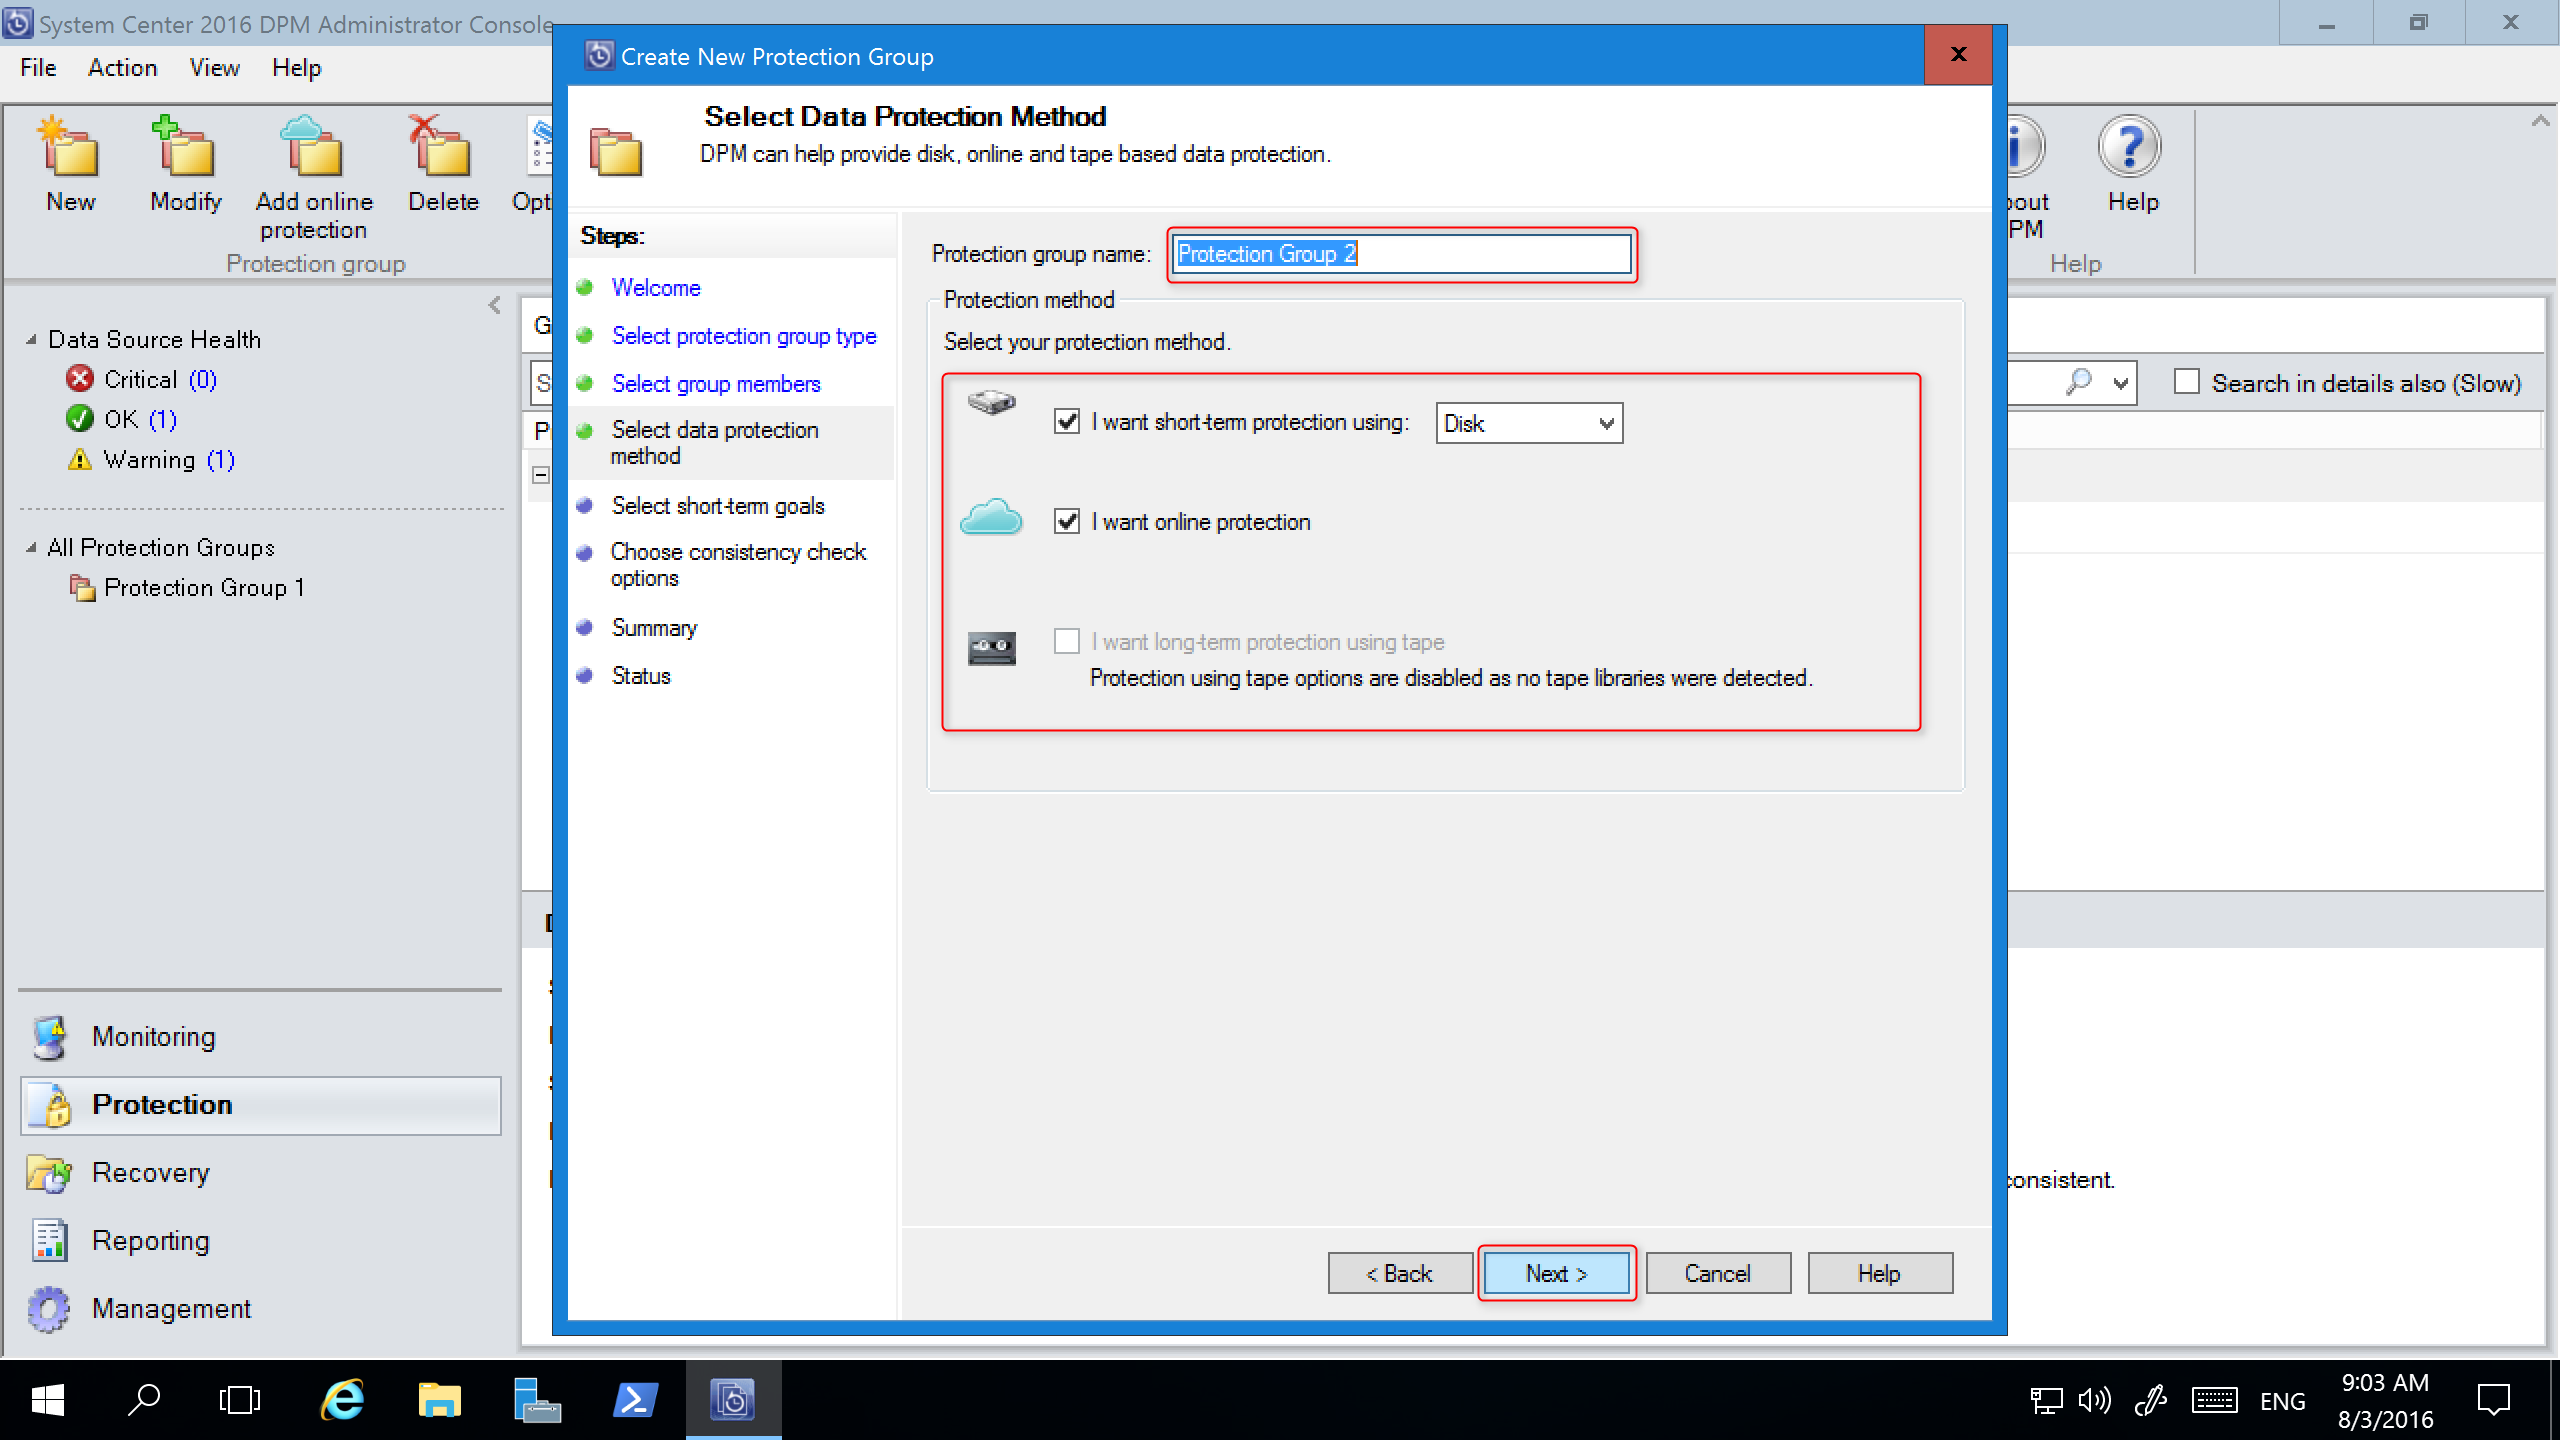 Upgrade Your System Center Dpm Microsoft Docs Electronic Selector For 8 Sources